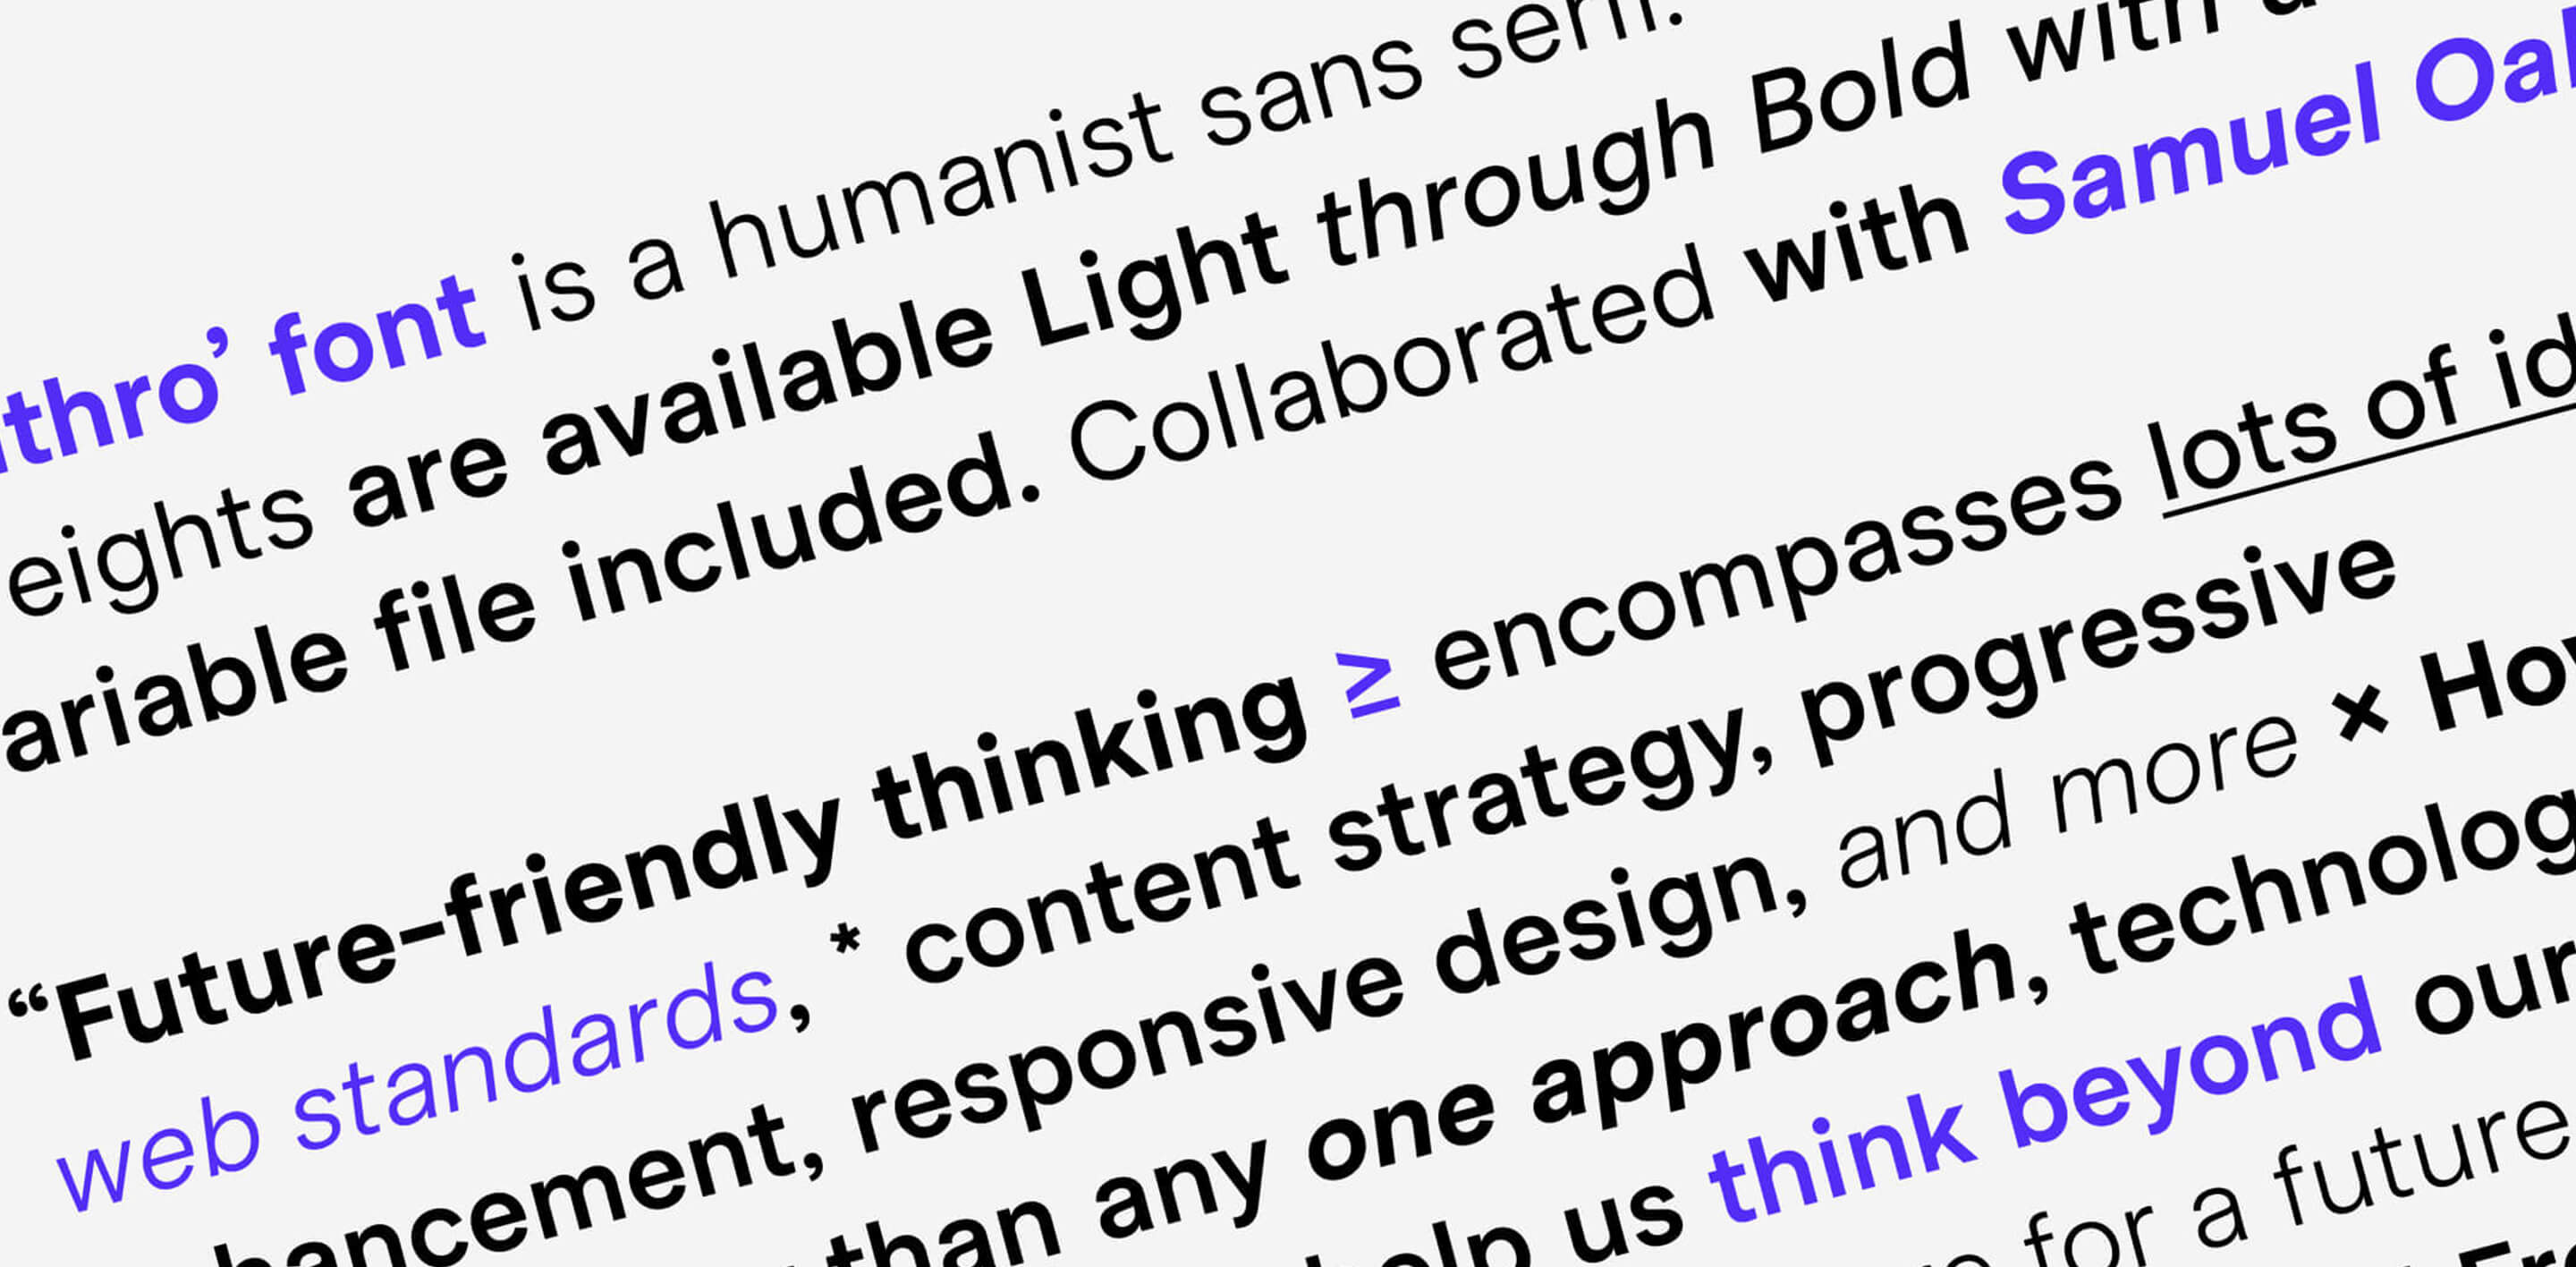 'Anthro' font is a humanist sans serif. Weights are available Light through Bold with a variable file included.